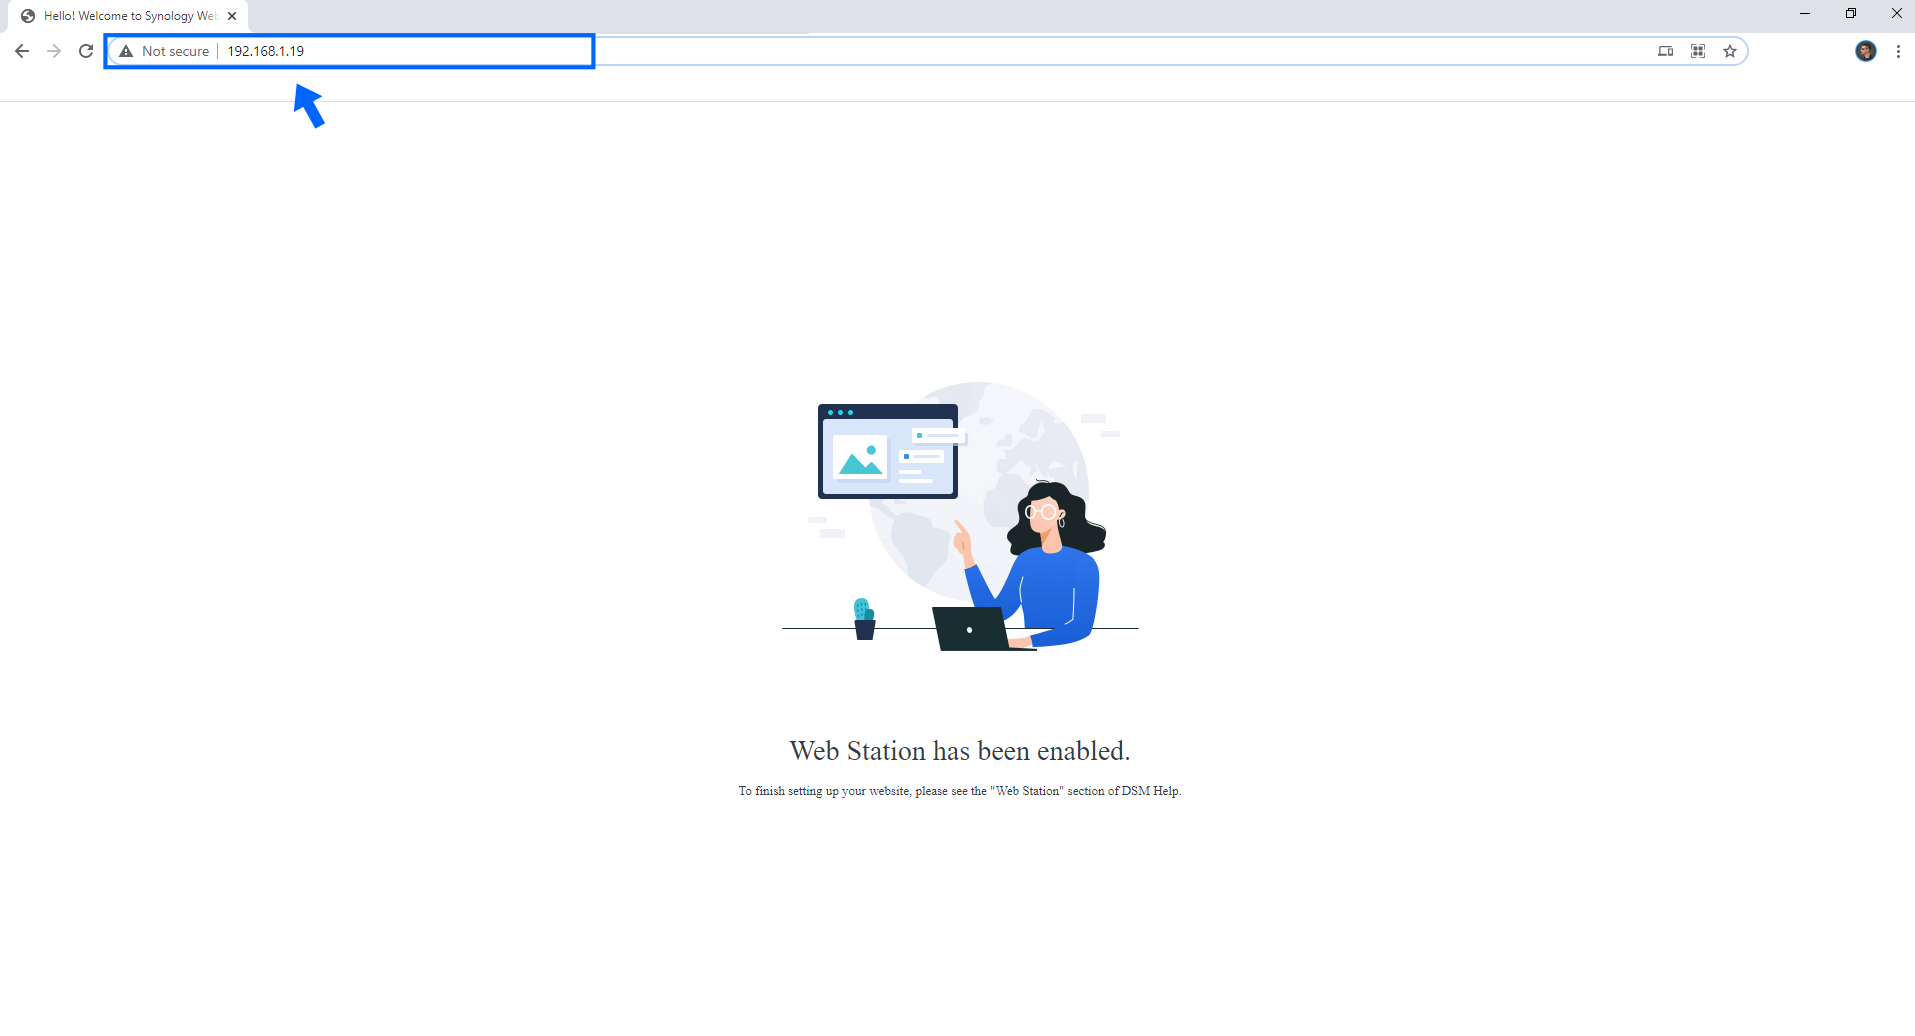 1 Synology Web Station has been enabled.